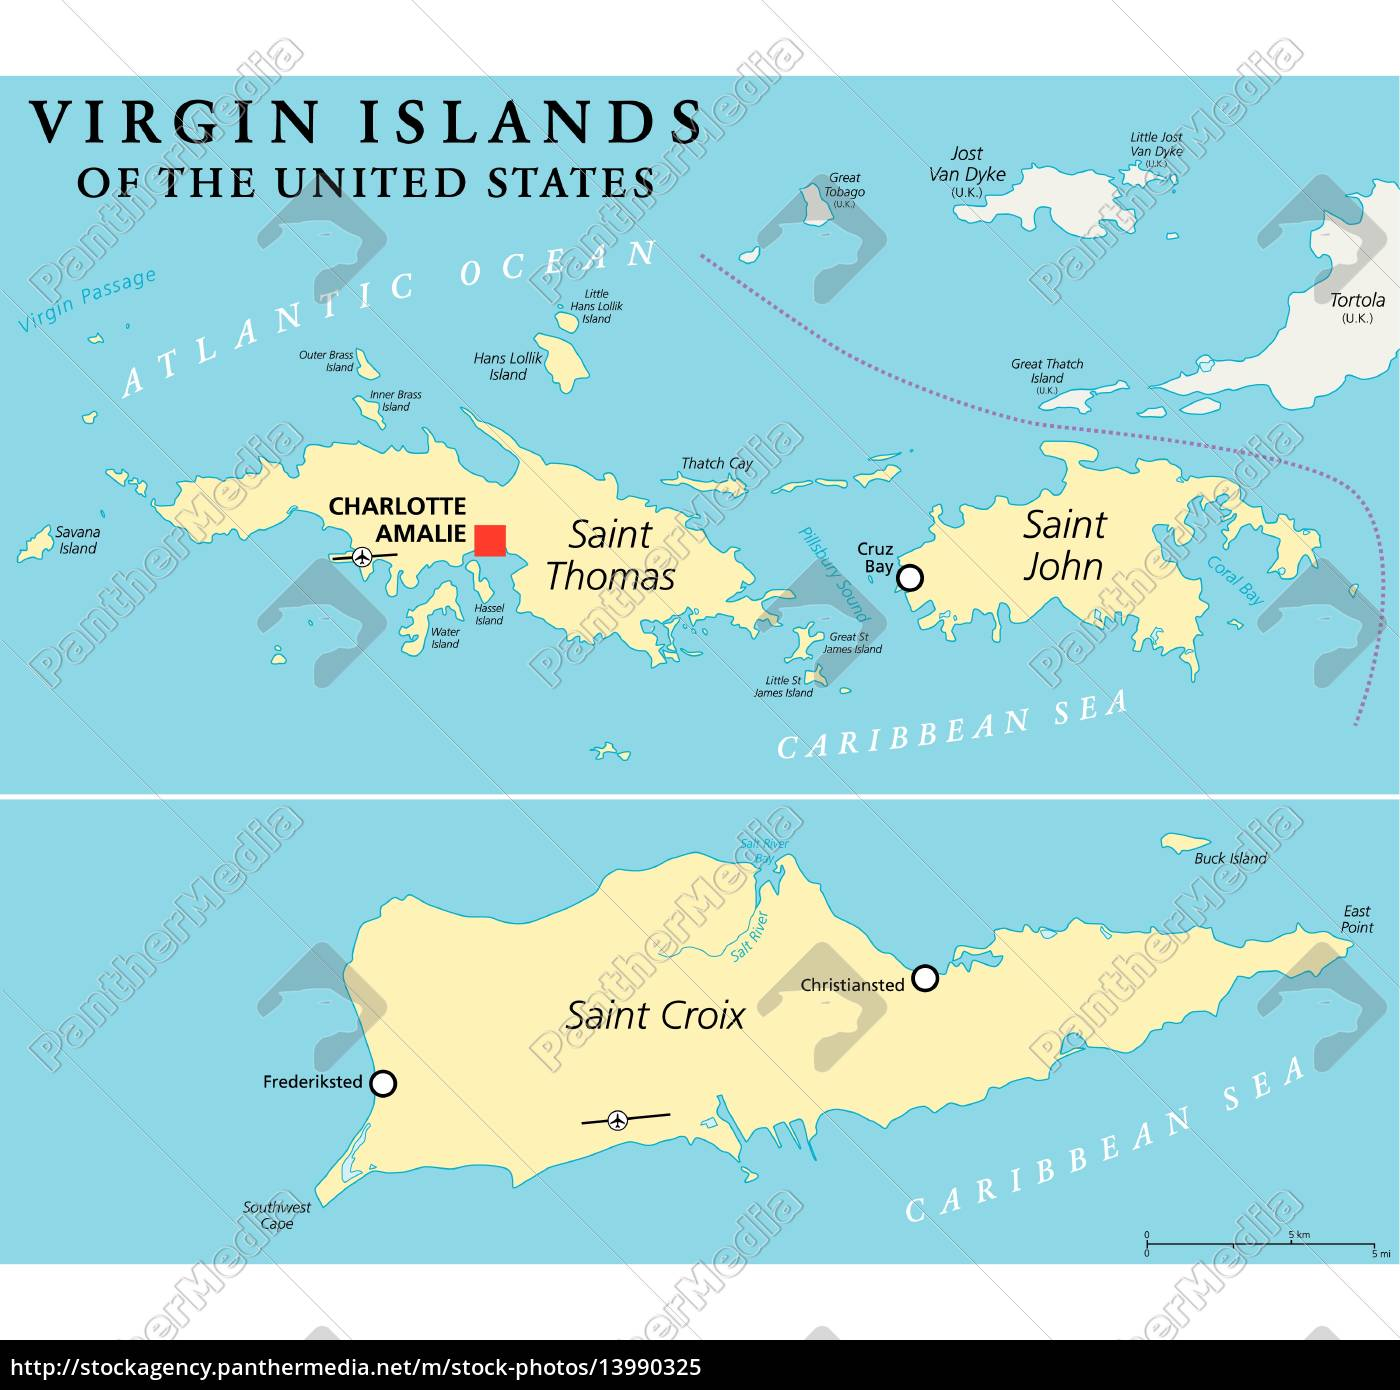 royalty free vector 13990325 - United States Virgin Islands Political Map